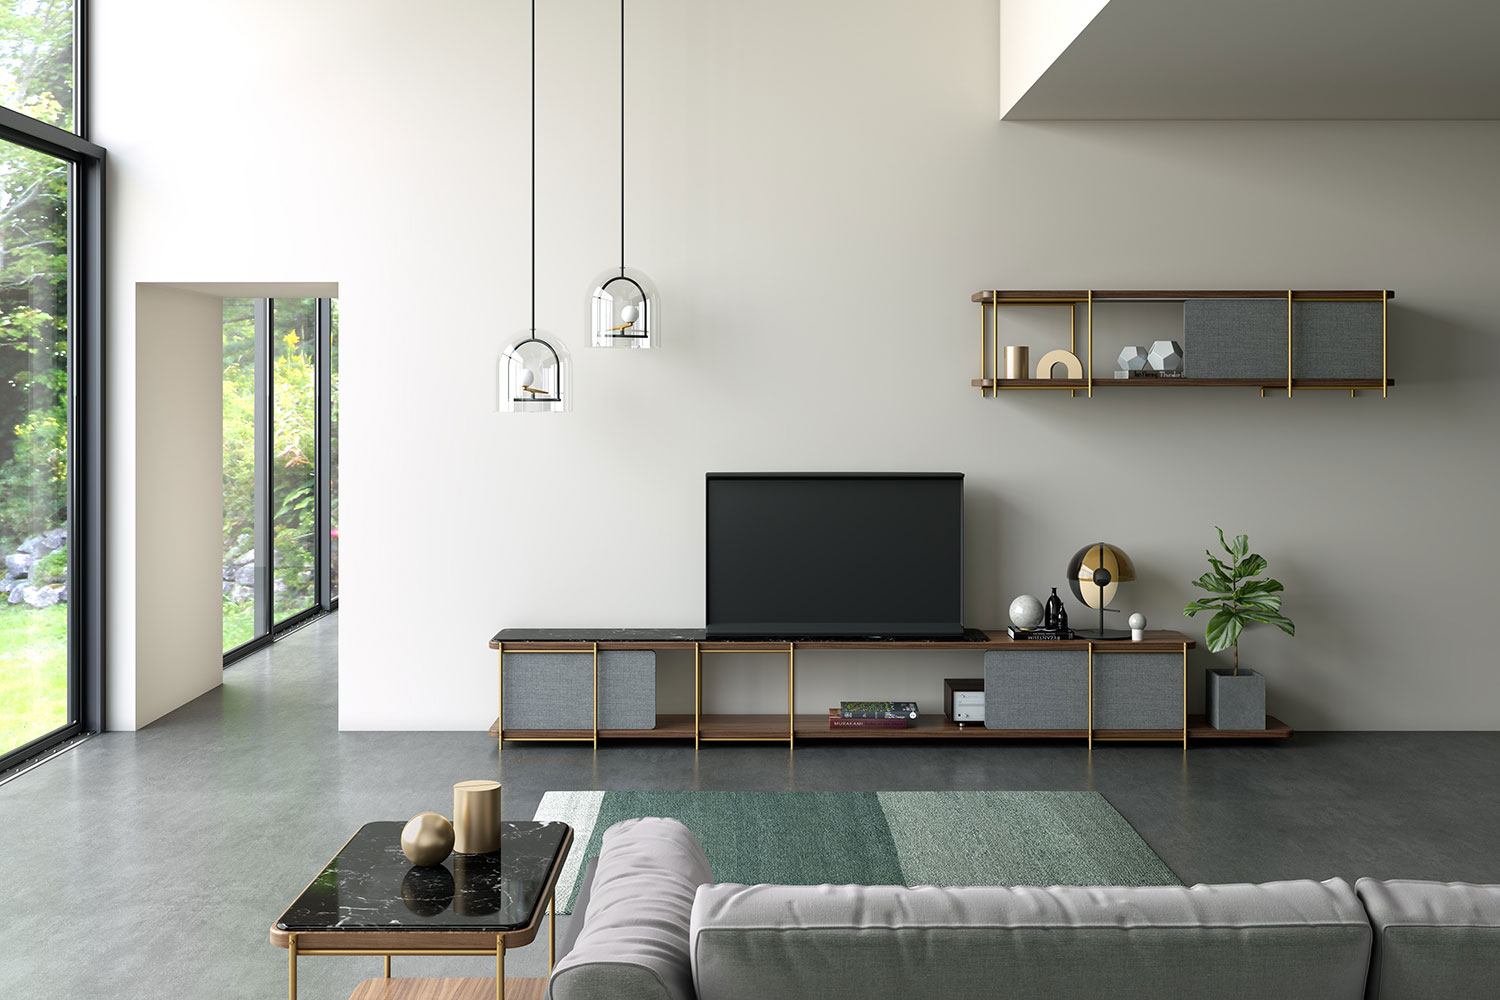 JULIA sideboard by Momocca. Photo: Courtesy of Momocca.